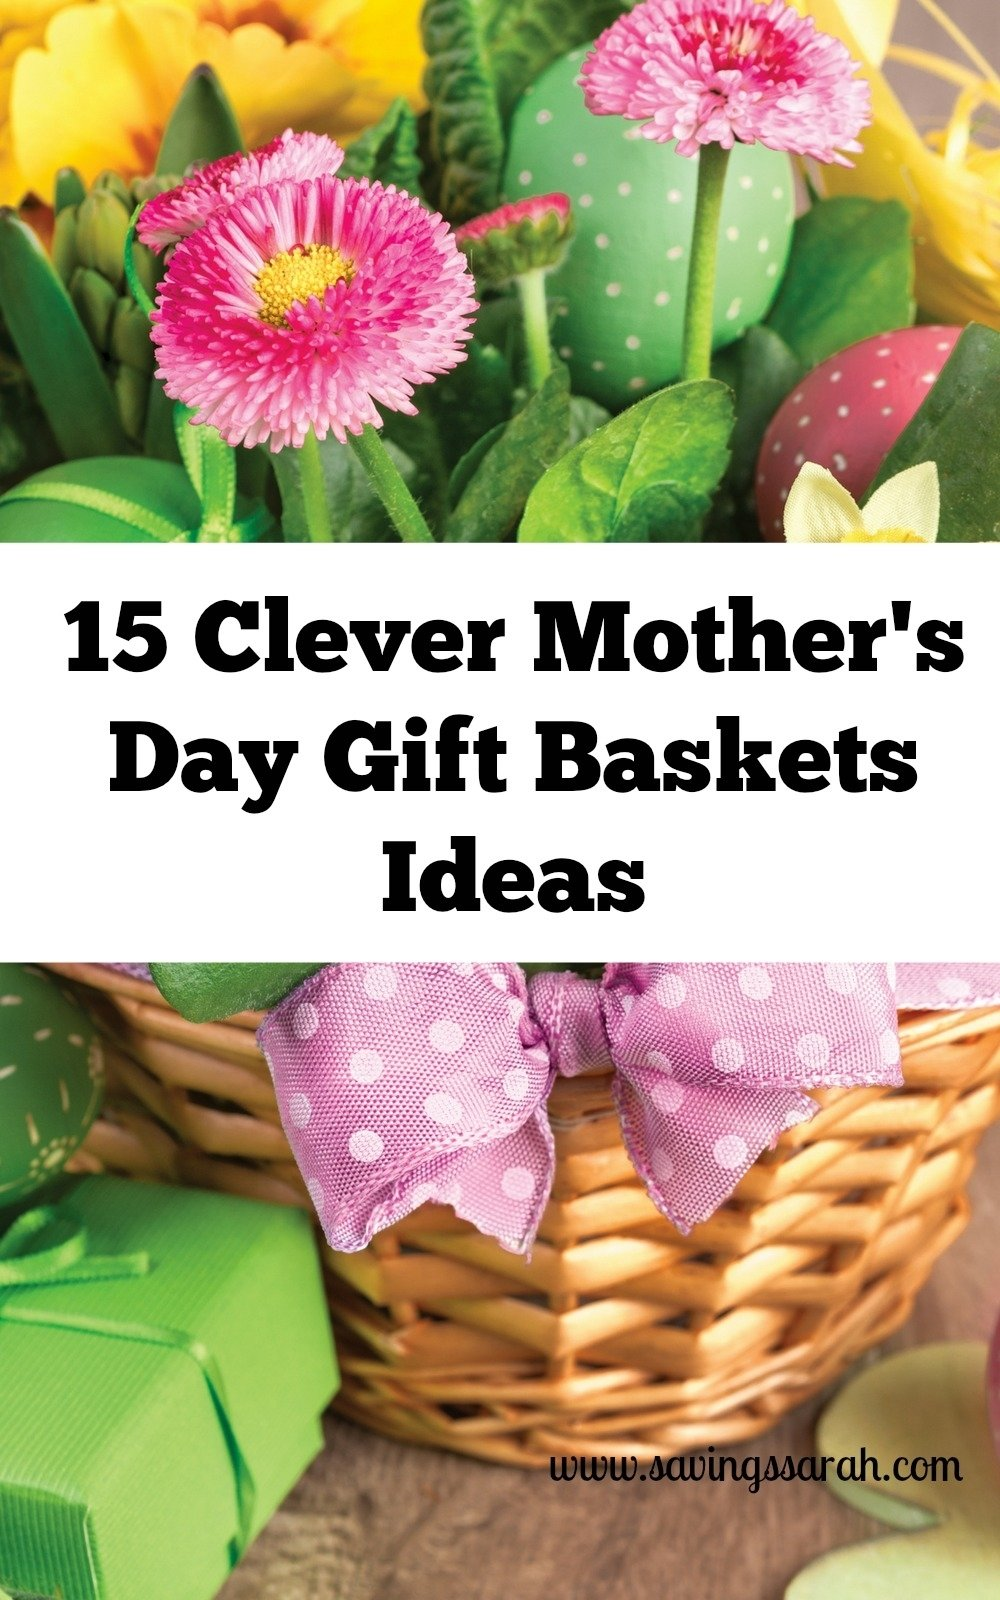 15 clever mother's day gift baskets ideas - earning and saving with